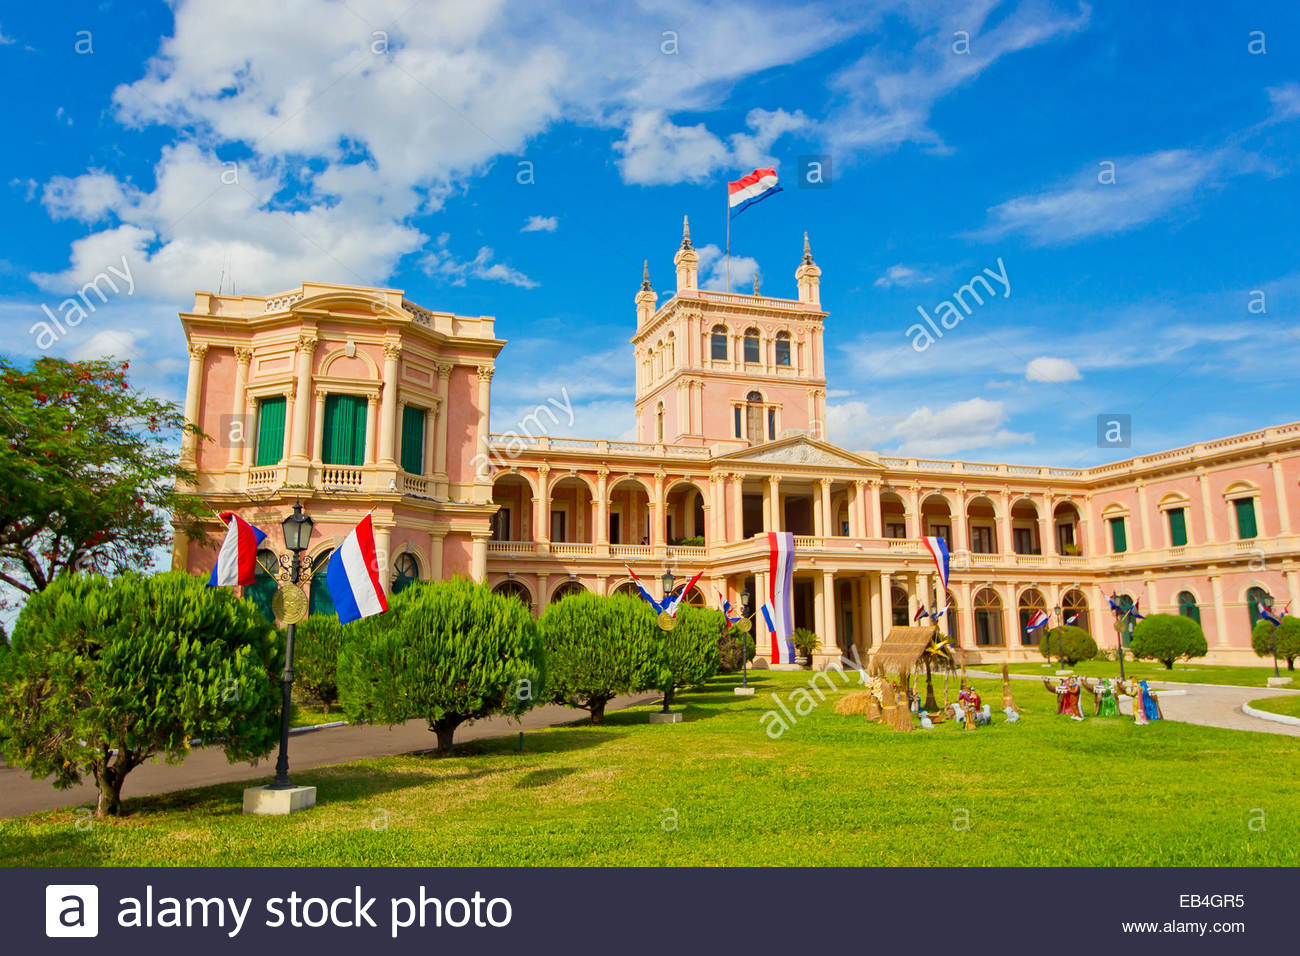 The Presidential palace in downtown Asuncion, Paraguay. - Stock Image